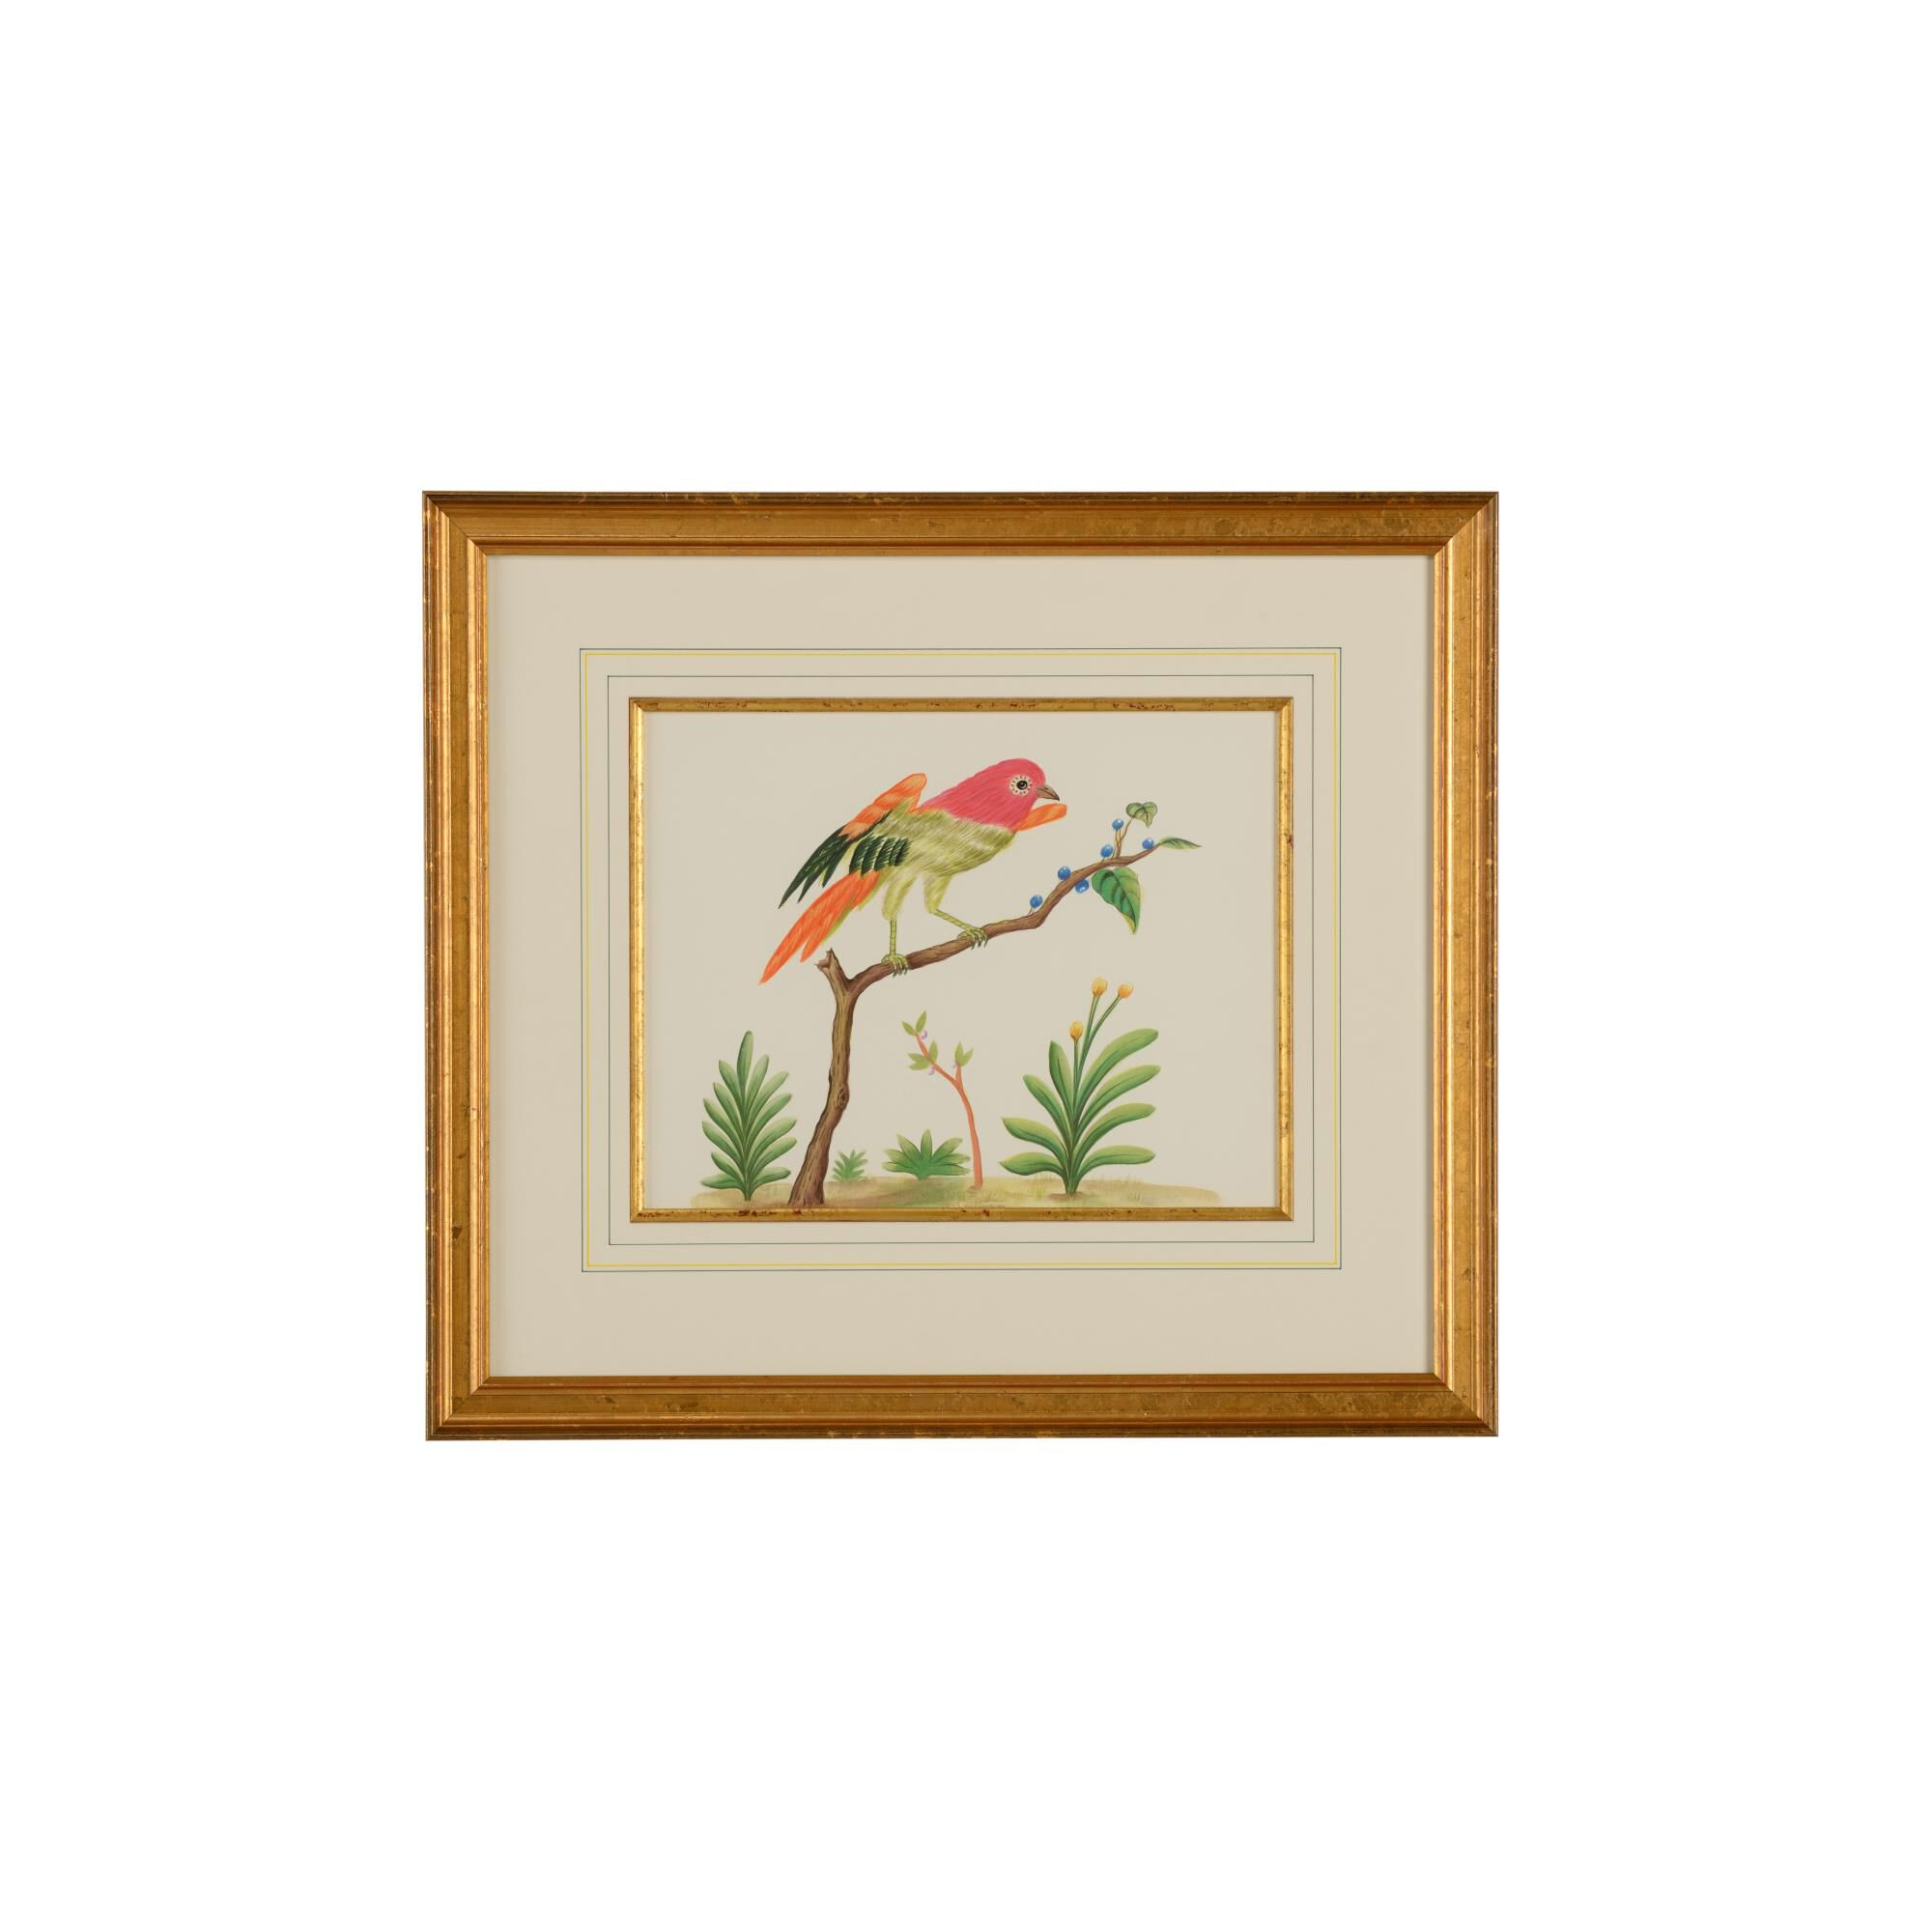 Chelsea House MULTICOLOR BIRD Painting Multicolor Bird - 386859 (2275138) photo